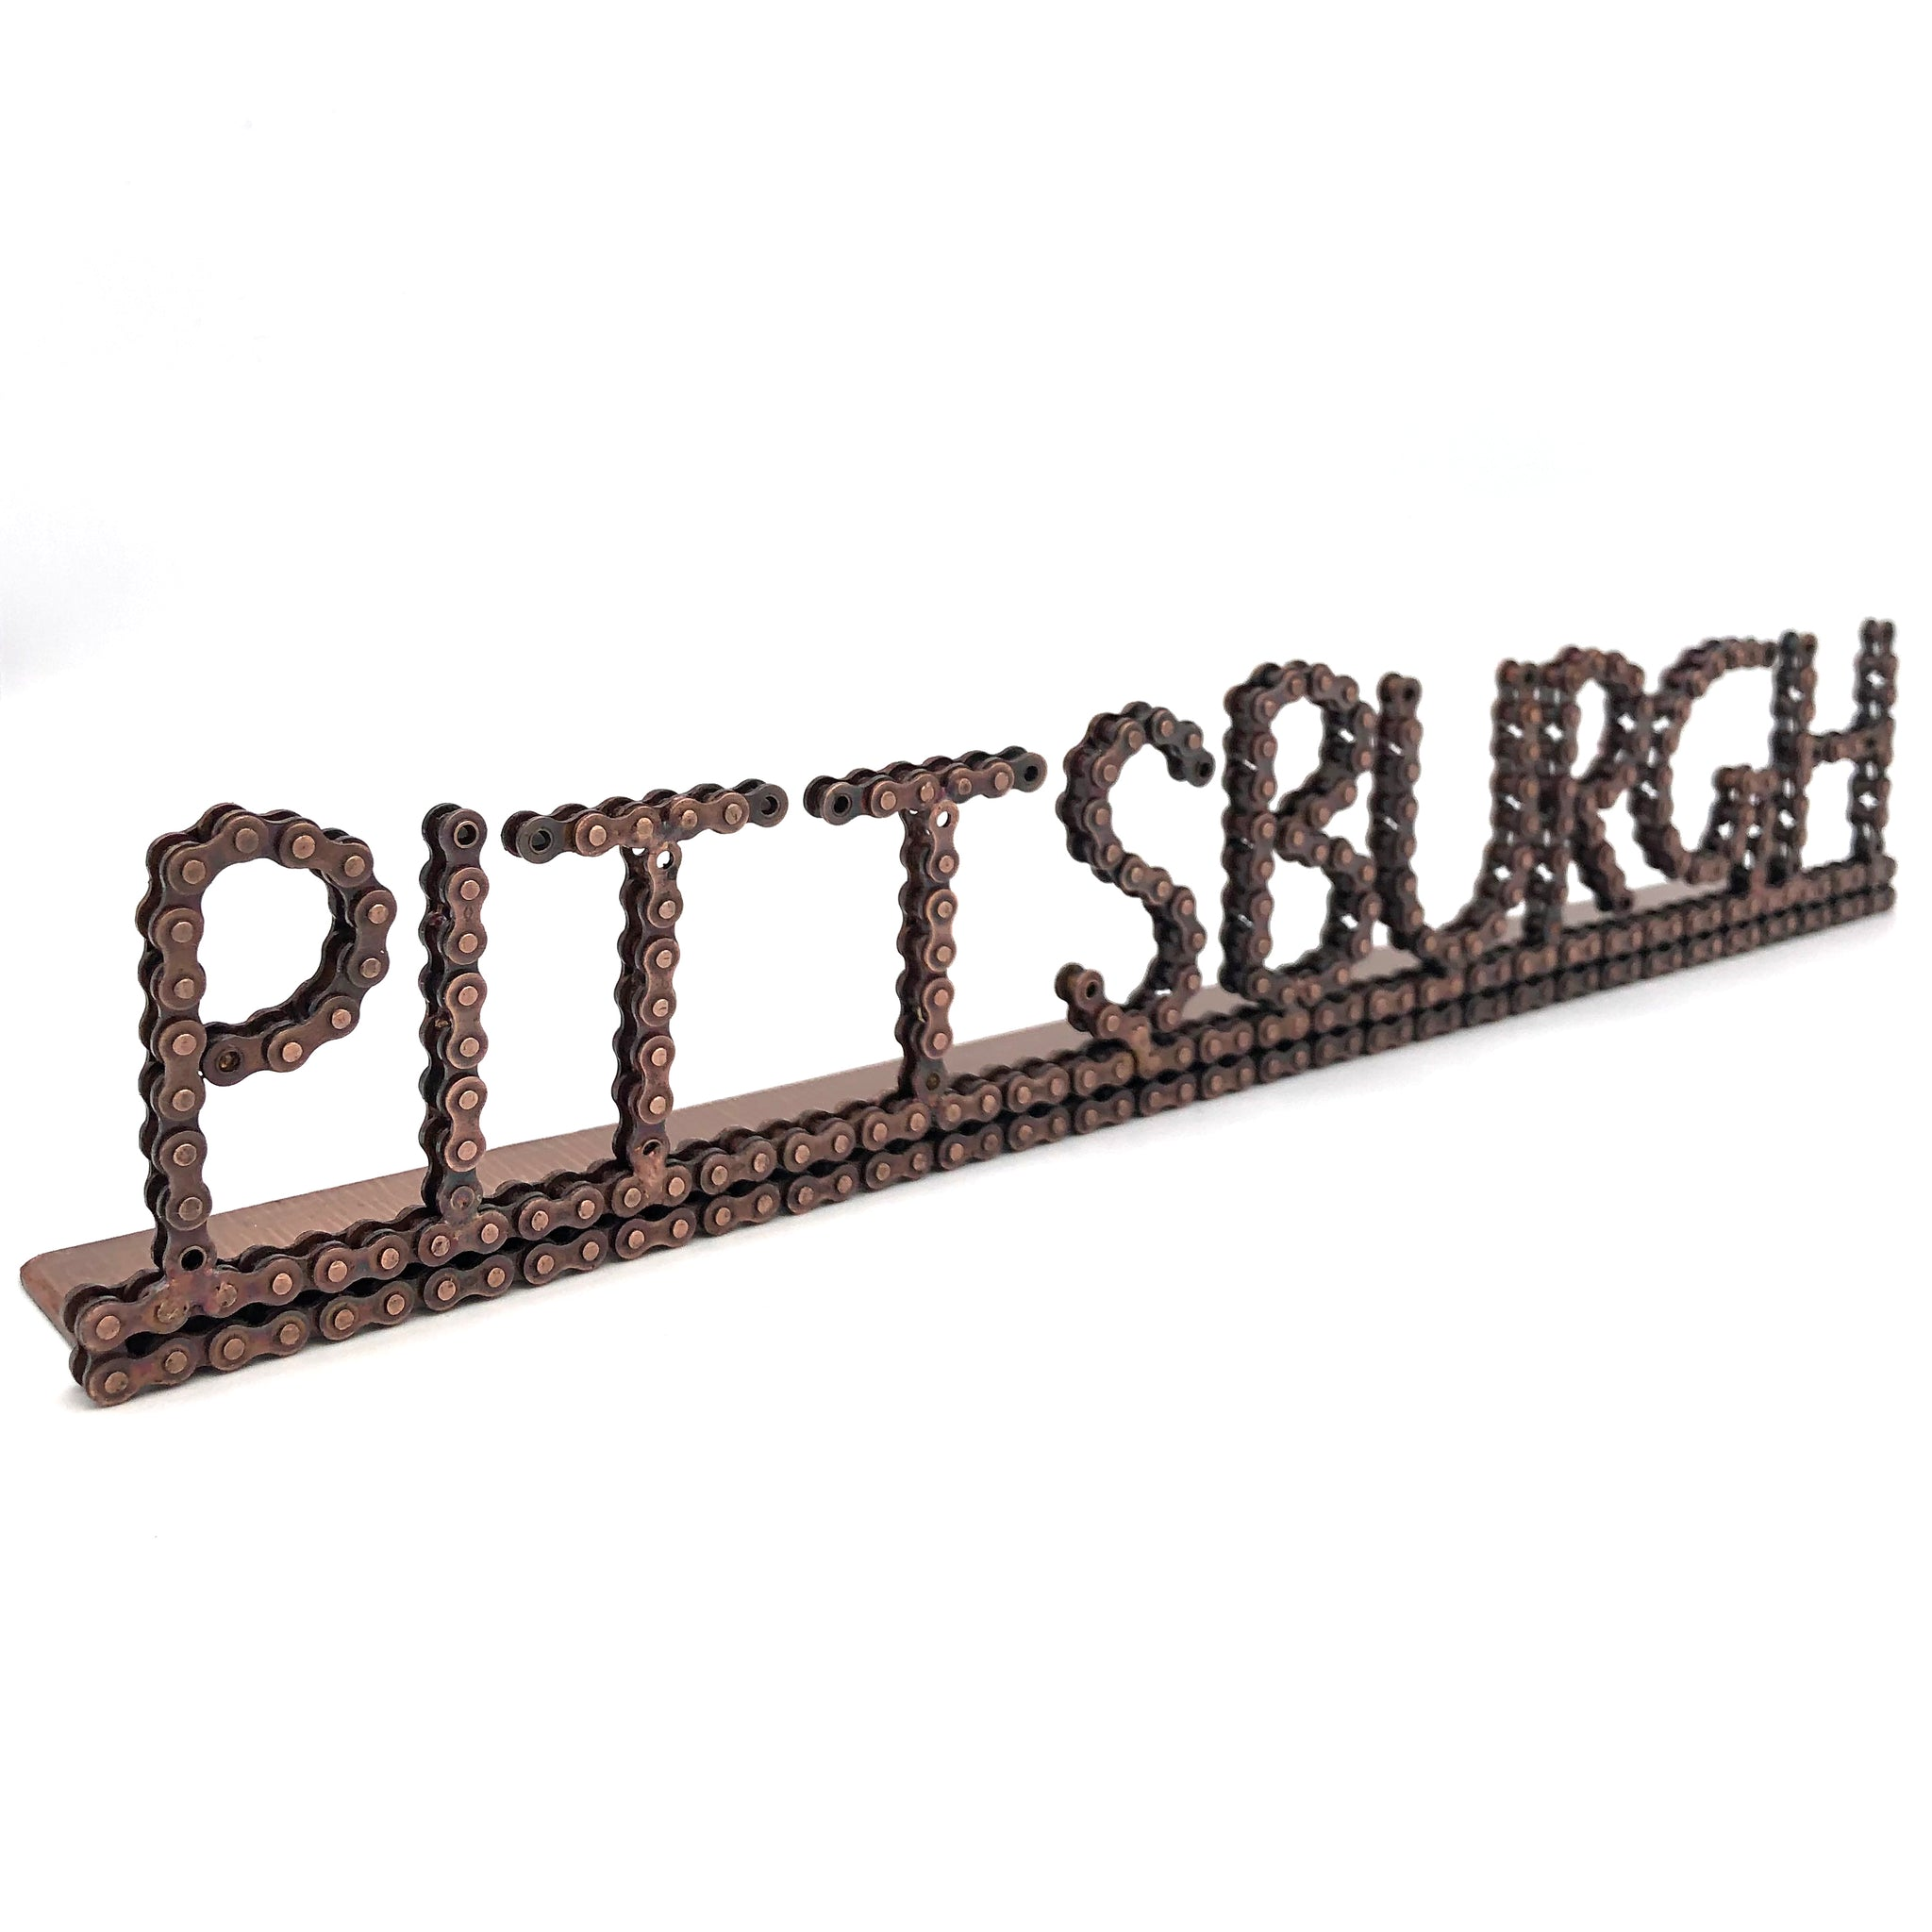 Pittsburgh Bicycle Chain Desk Art